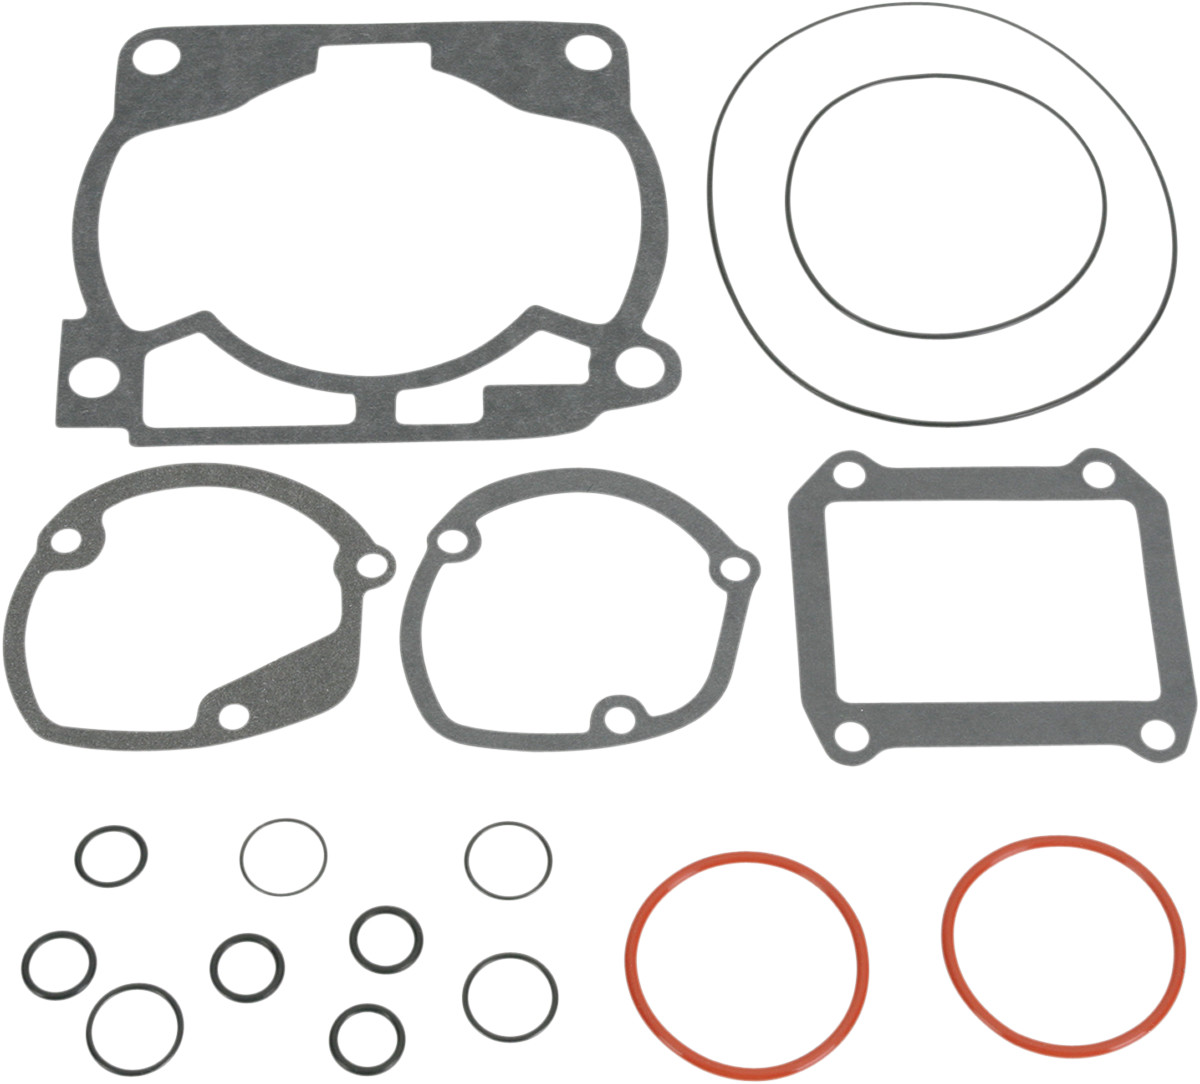 Moose Racing Top End Gasket Kit For KTM 250 SX 2003-2004